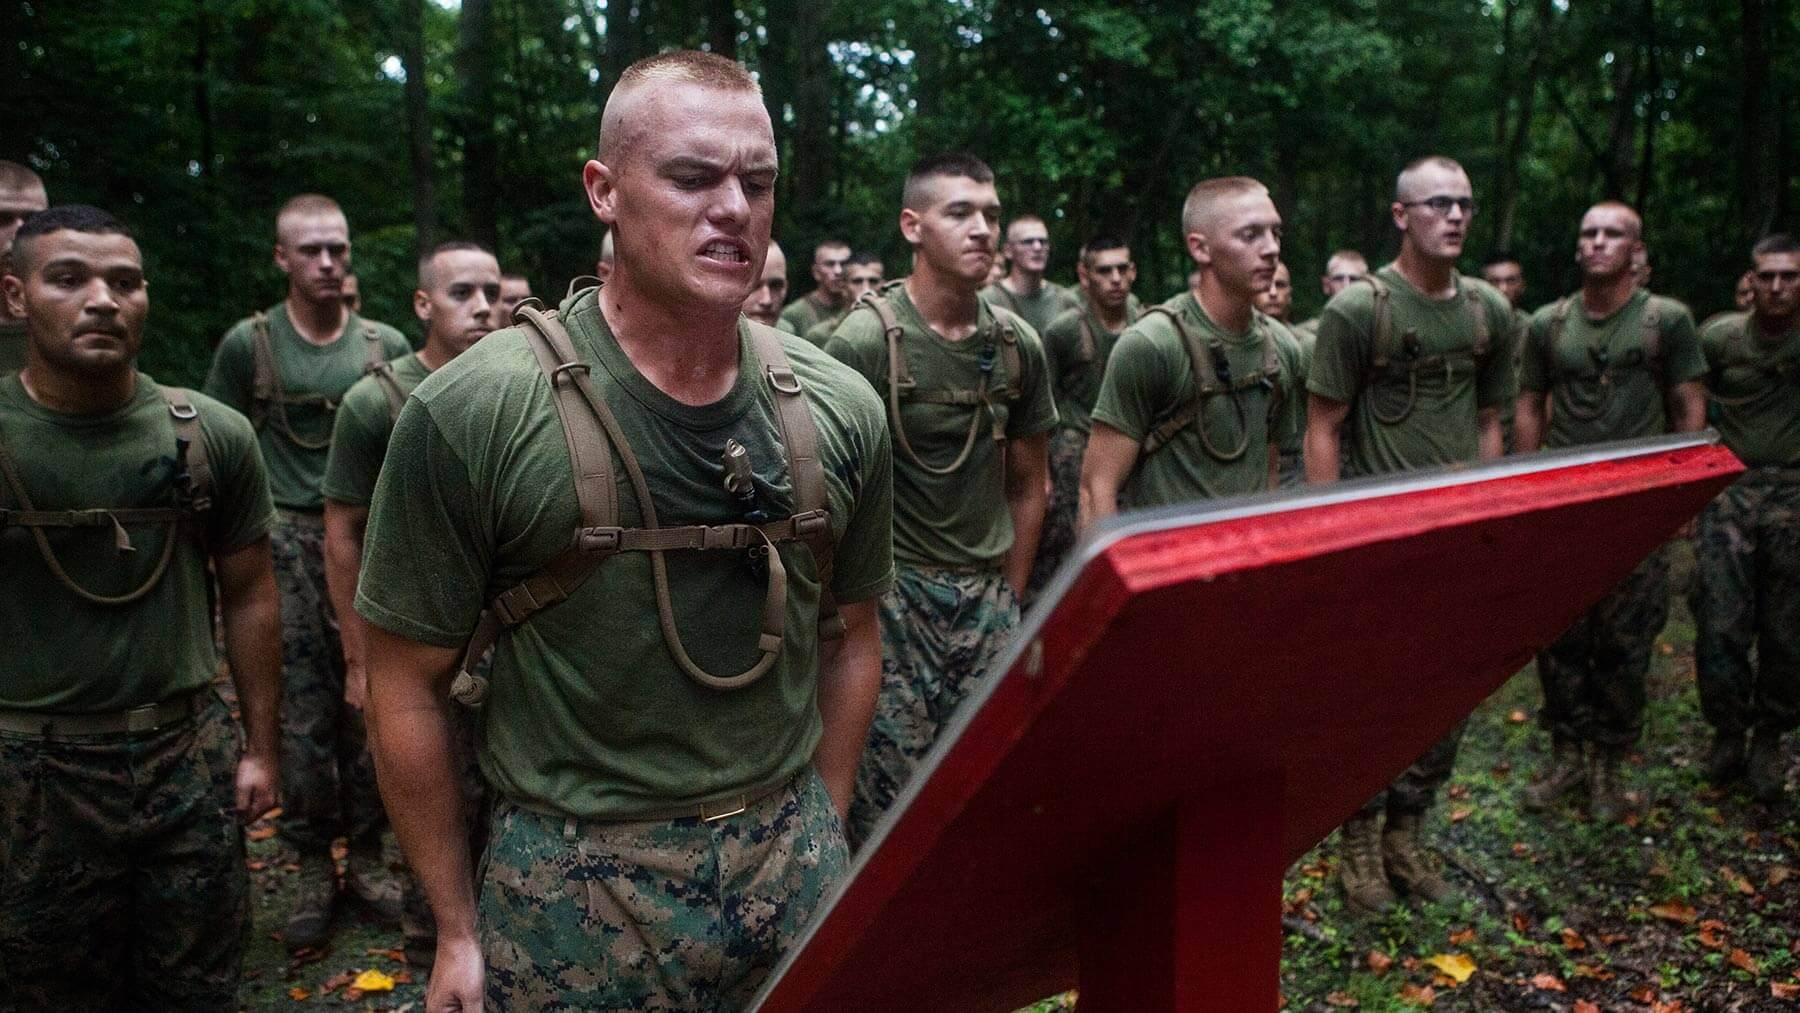 Leadership tasks tests officer candidate's ability to lead under pressure.